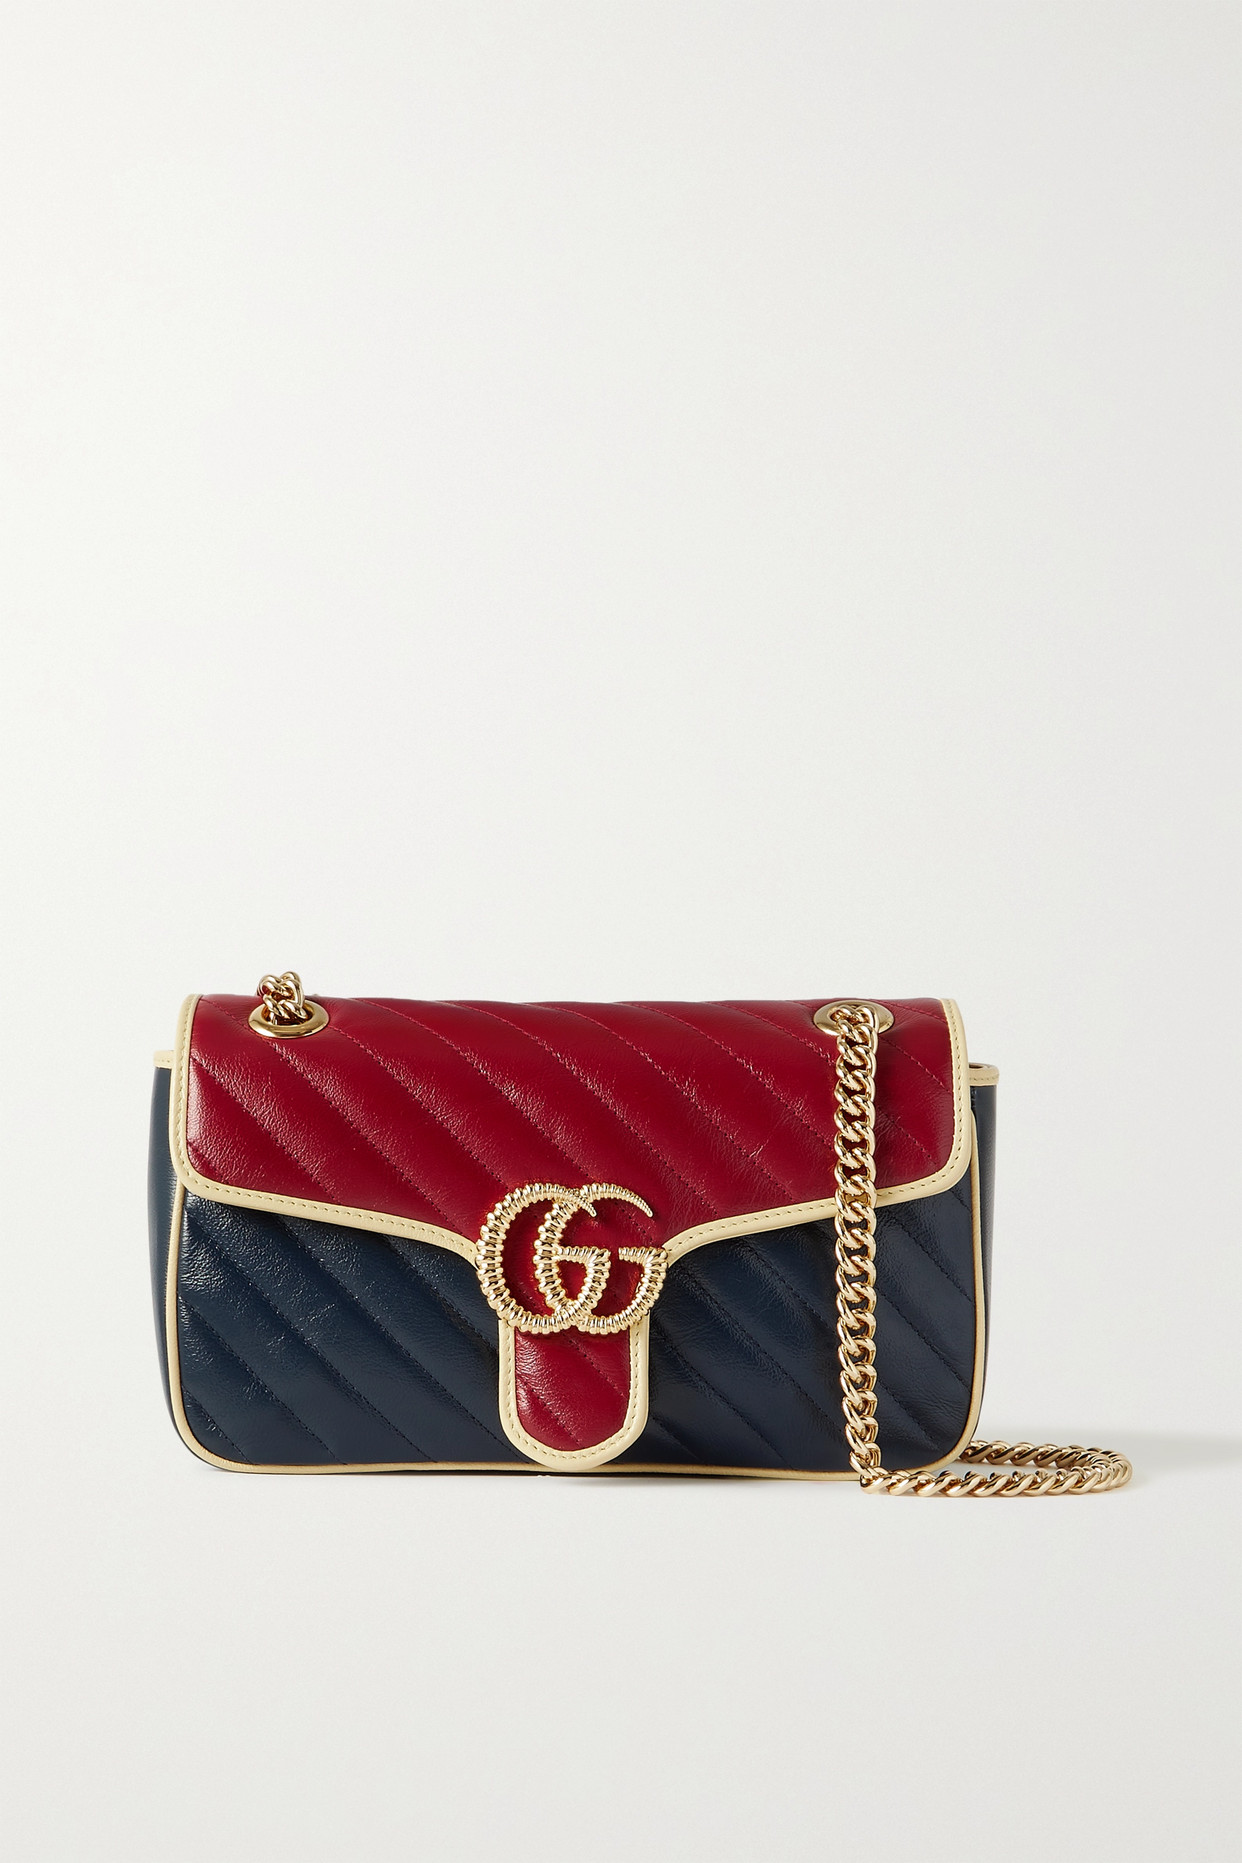 GUCCI - Gg Marmont 2.0 Small Quilted Leather Shoulder Bag - Purple - one size